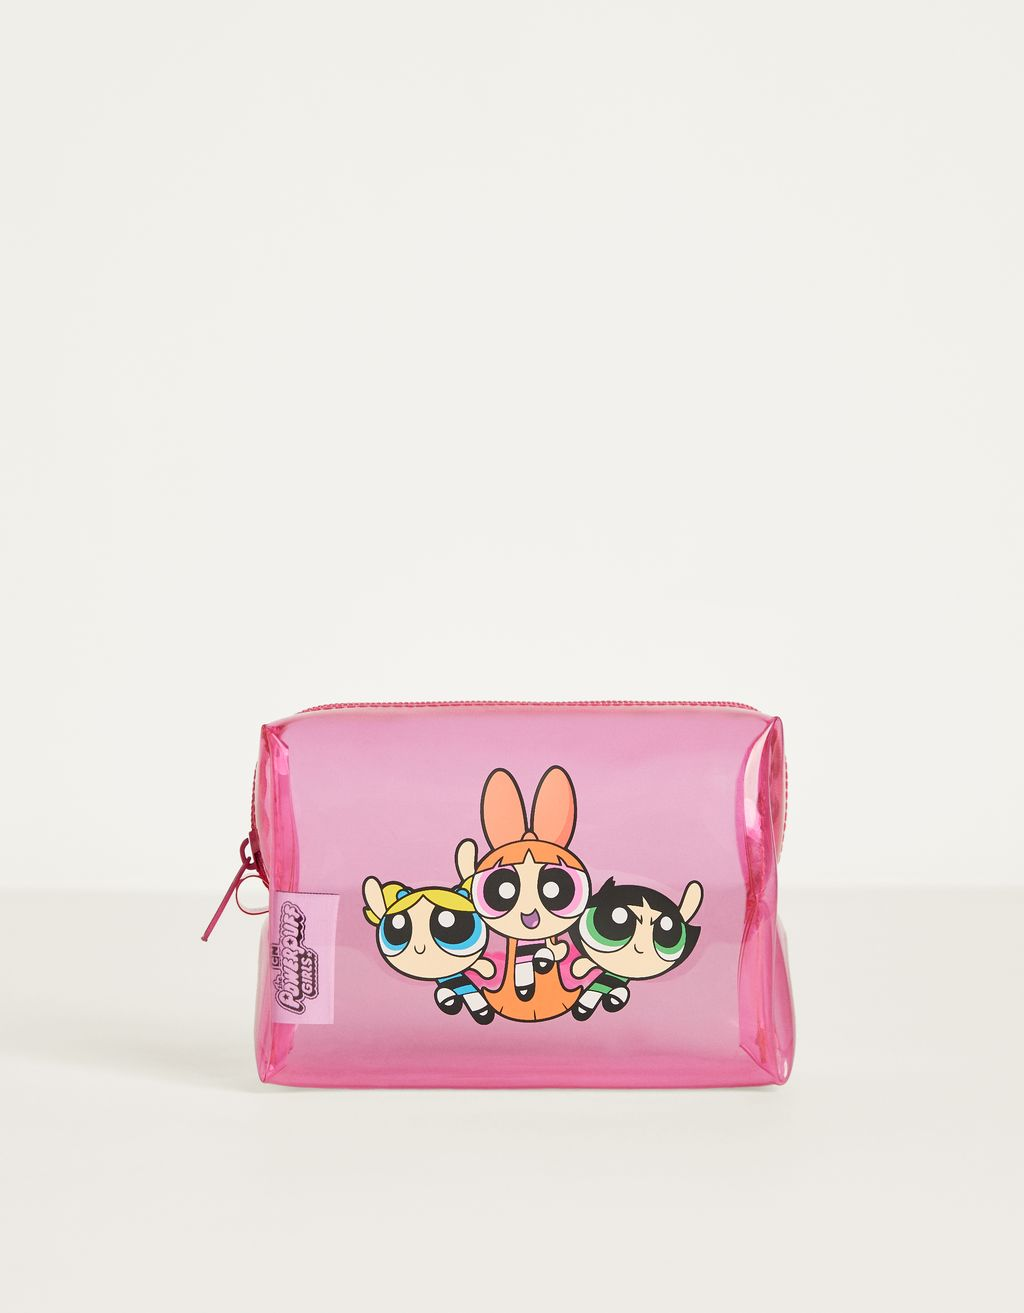 The Powerpuff Girls x Bershka toiletry bag